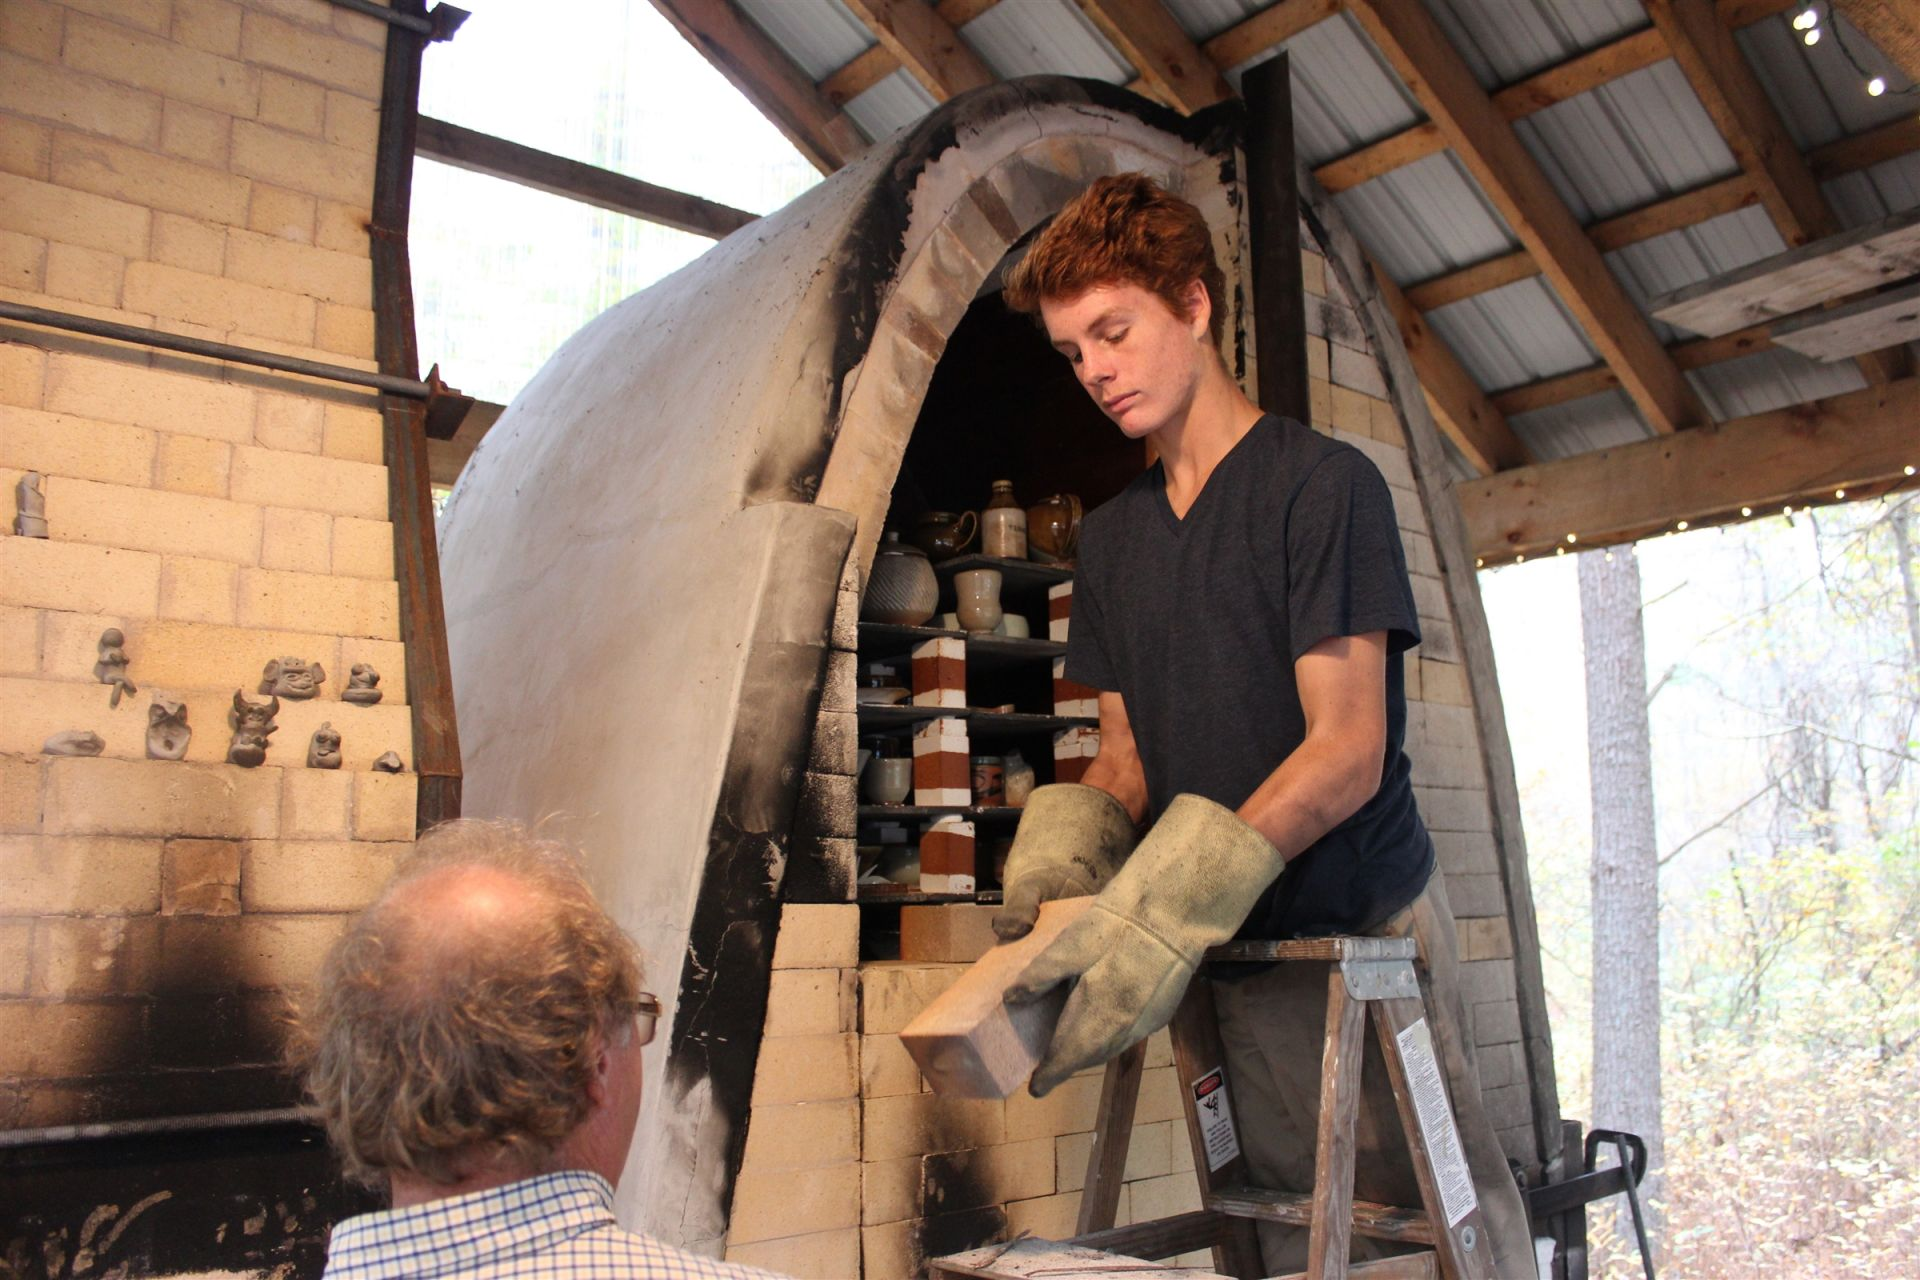 A student helps to load the wood kiln with faculty